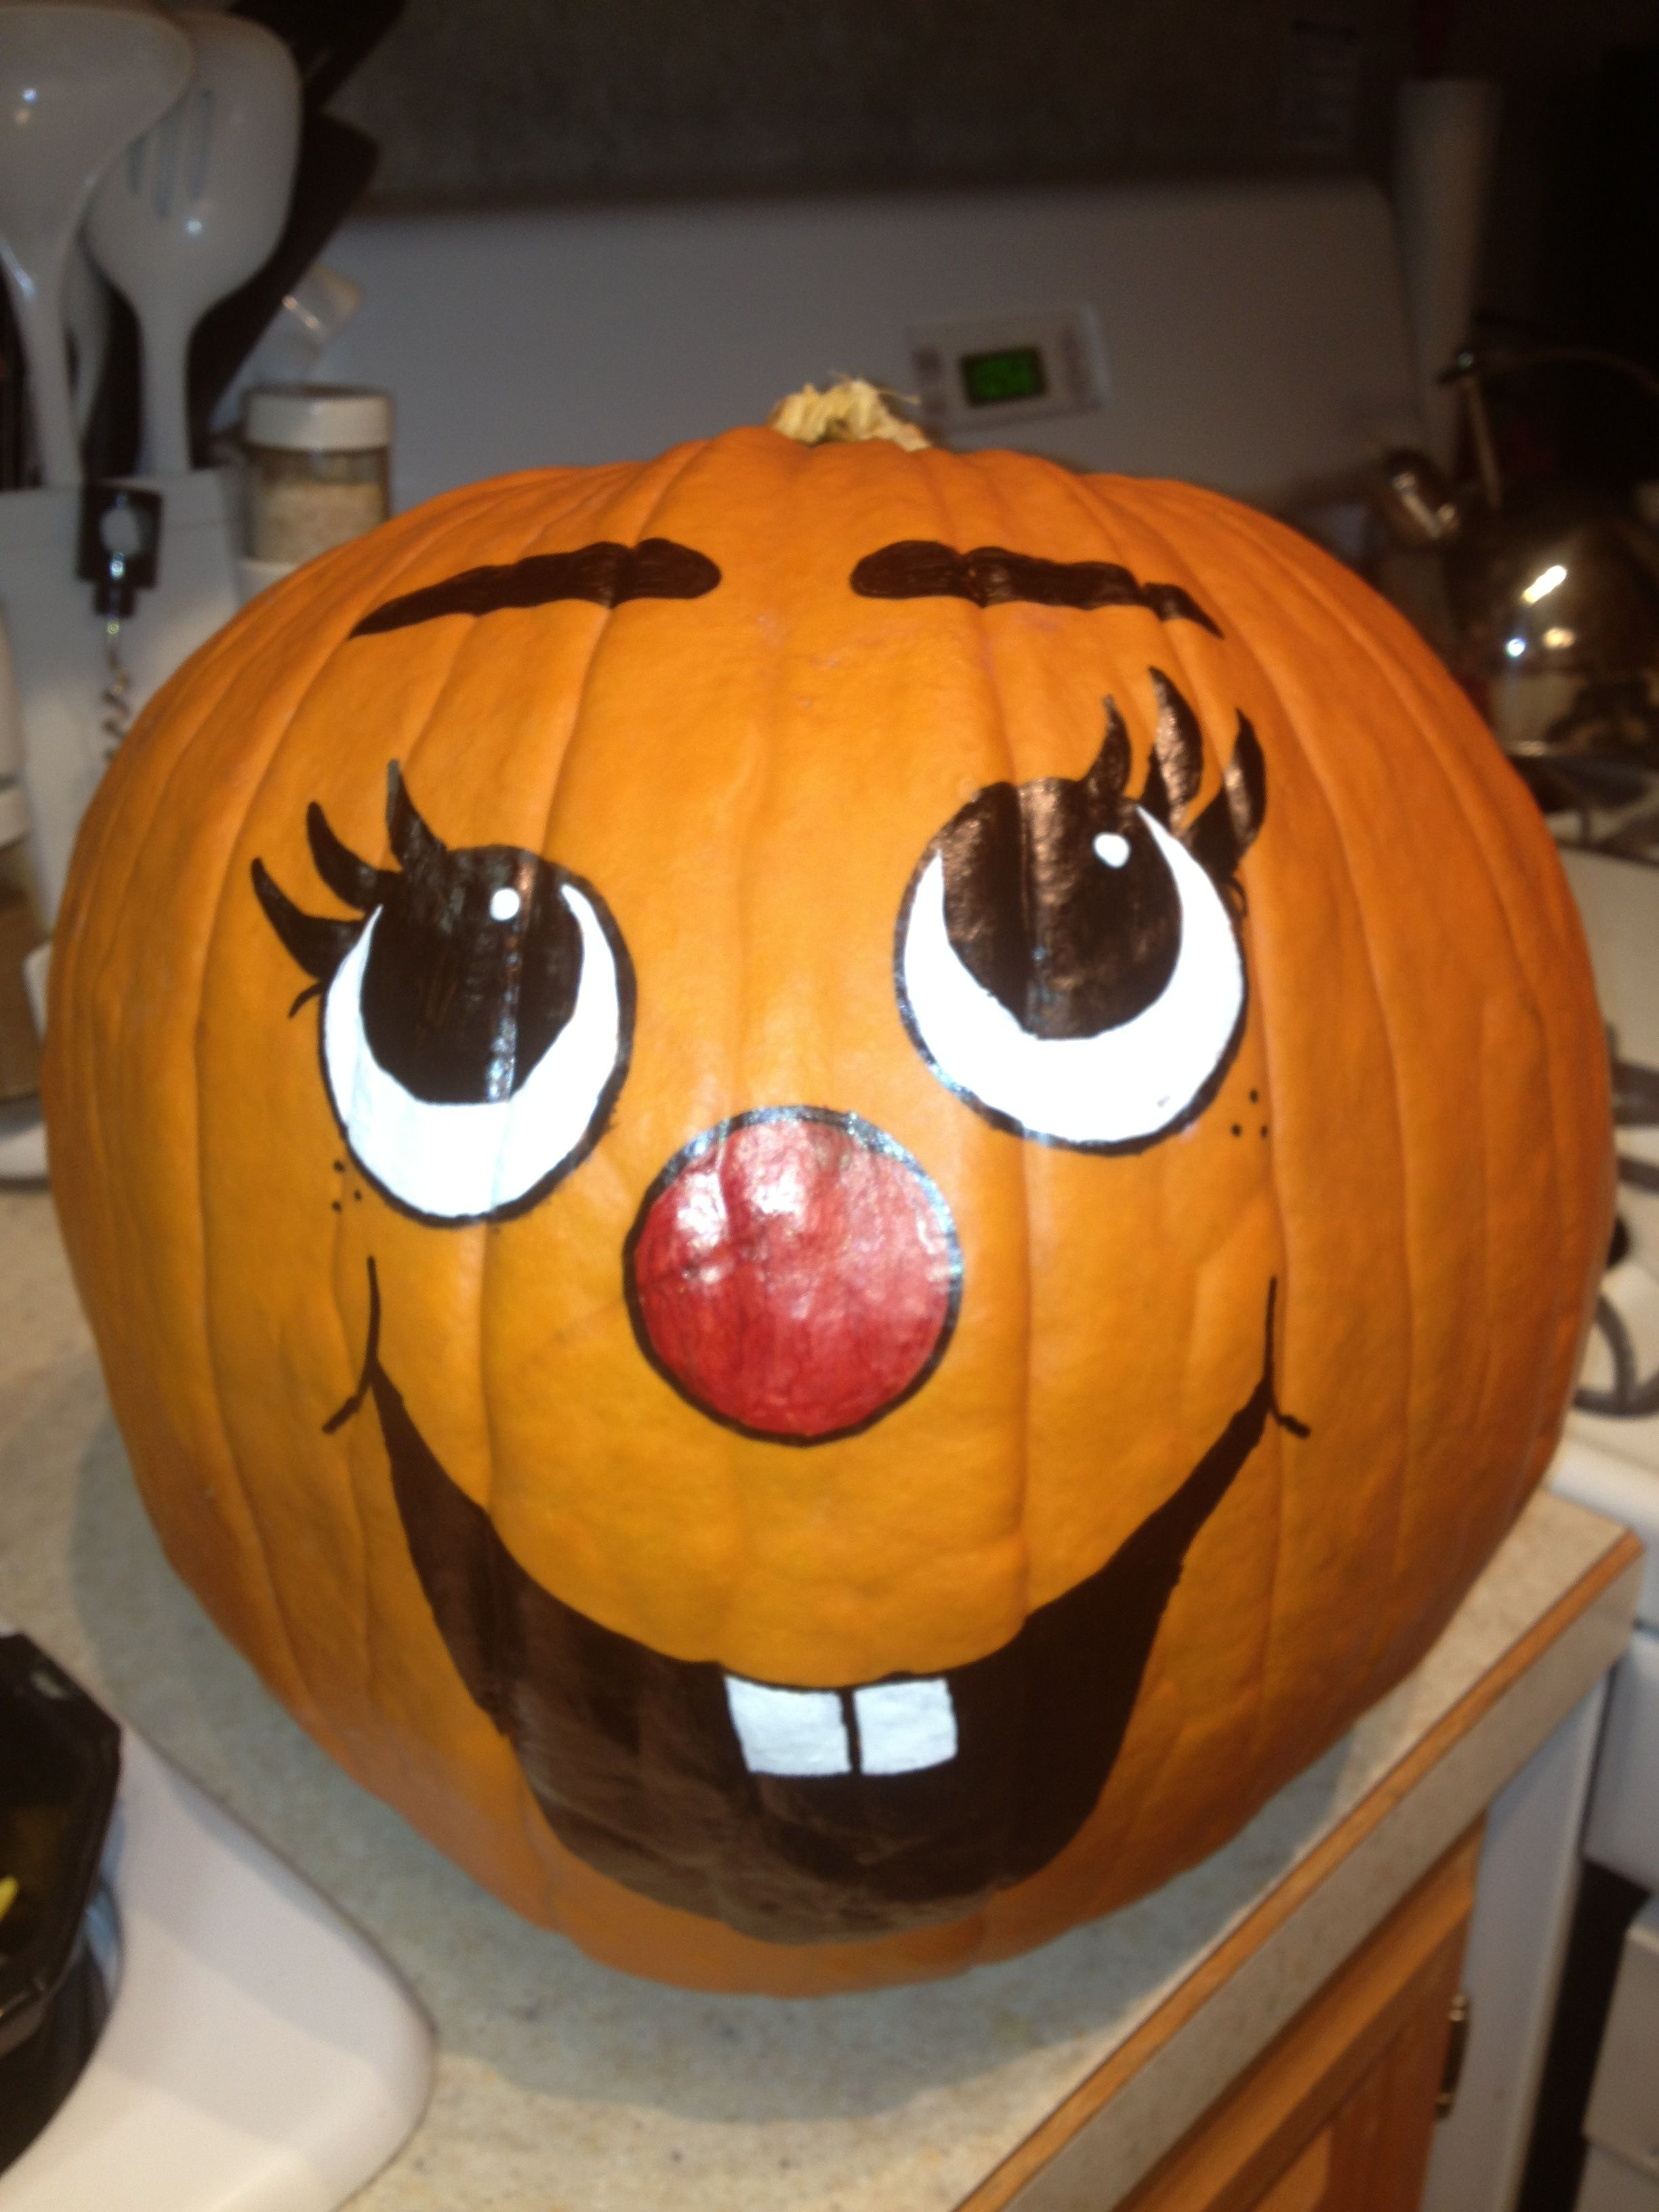 Weird Faces On Pumpkins 8